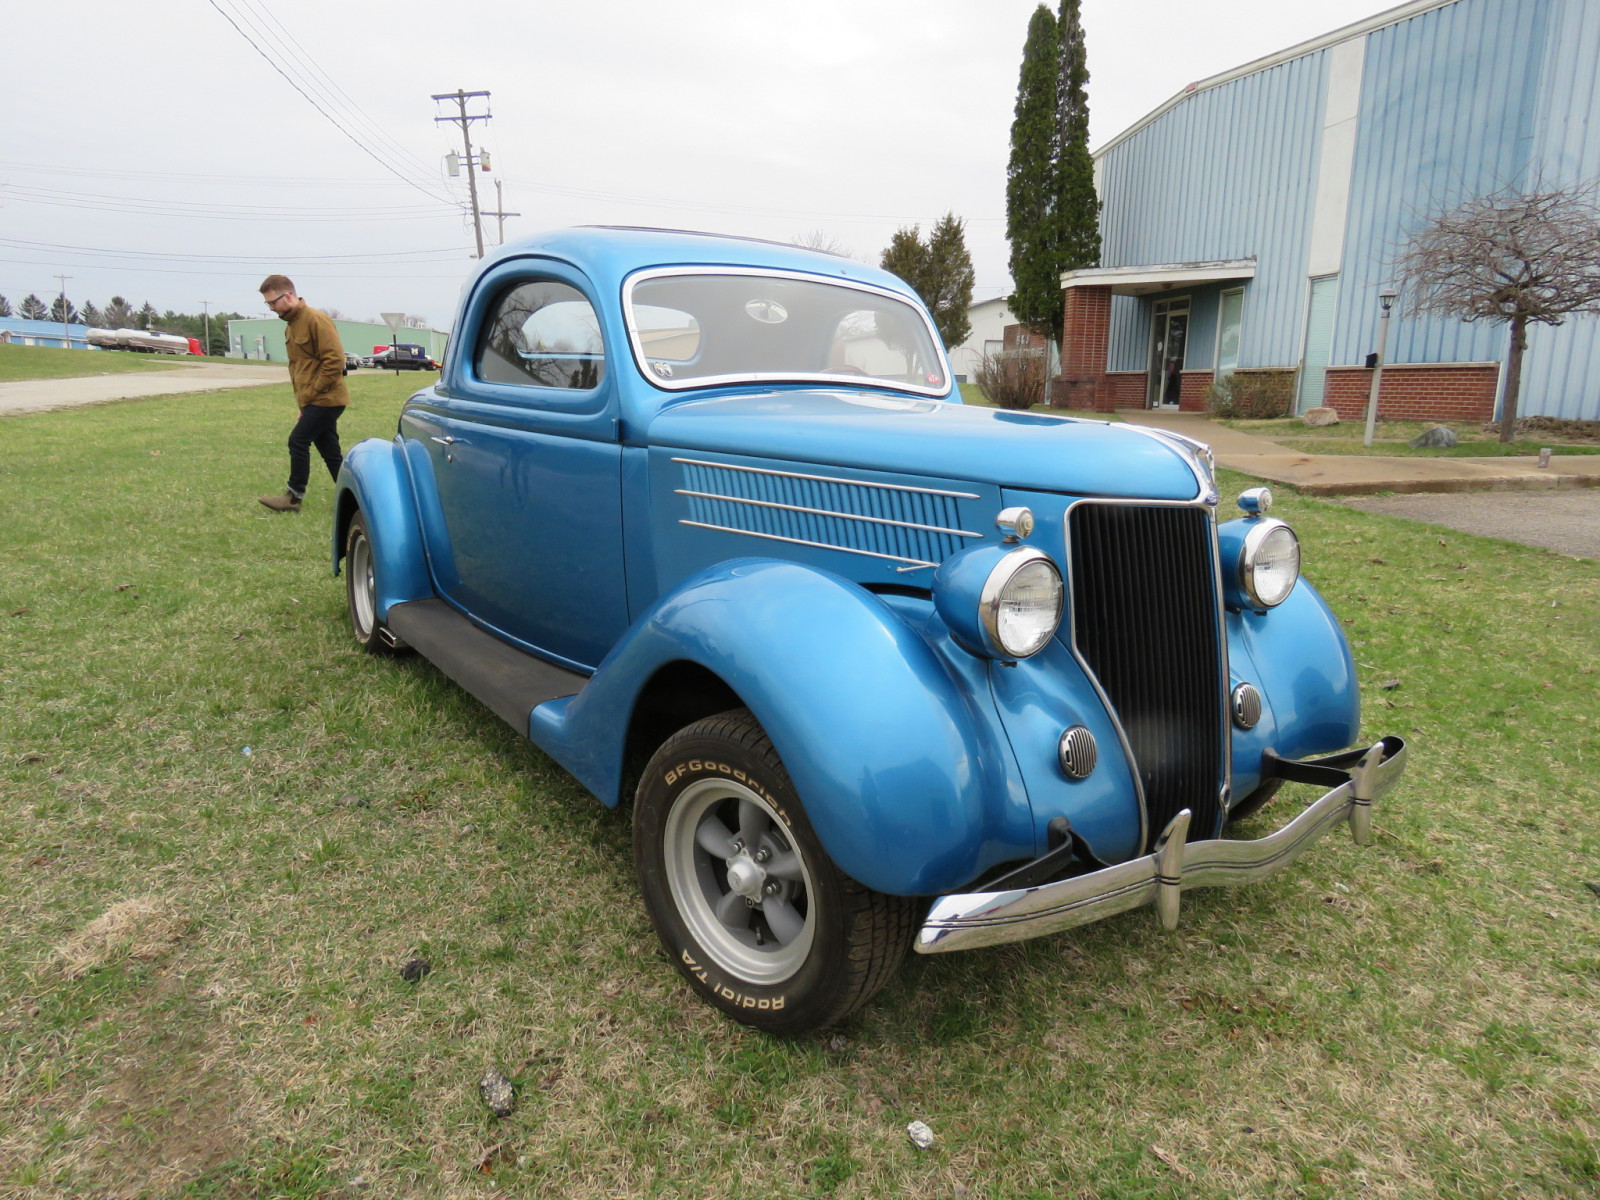 Rare 1936 Ford 3 Window Coupe - Image 9